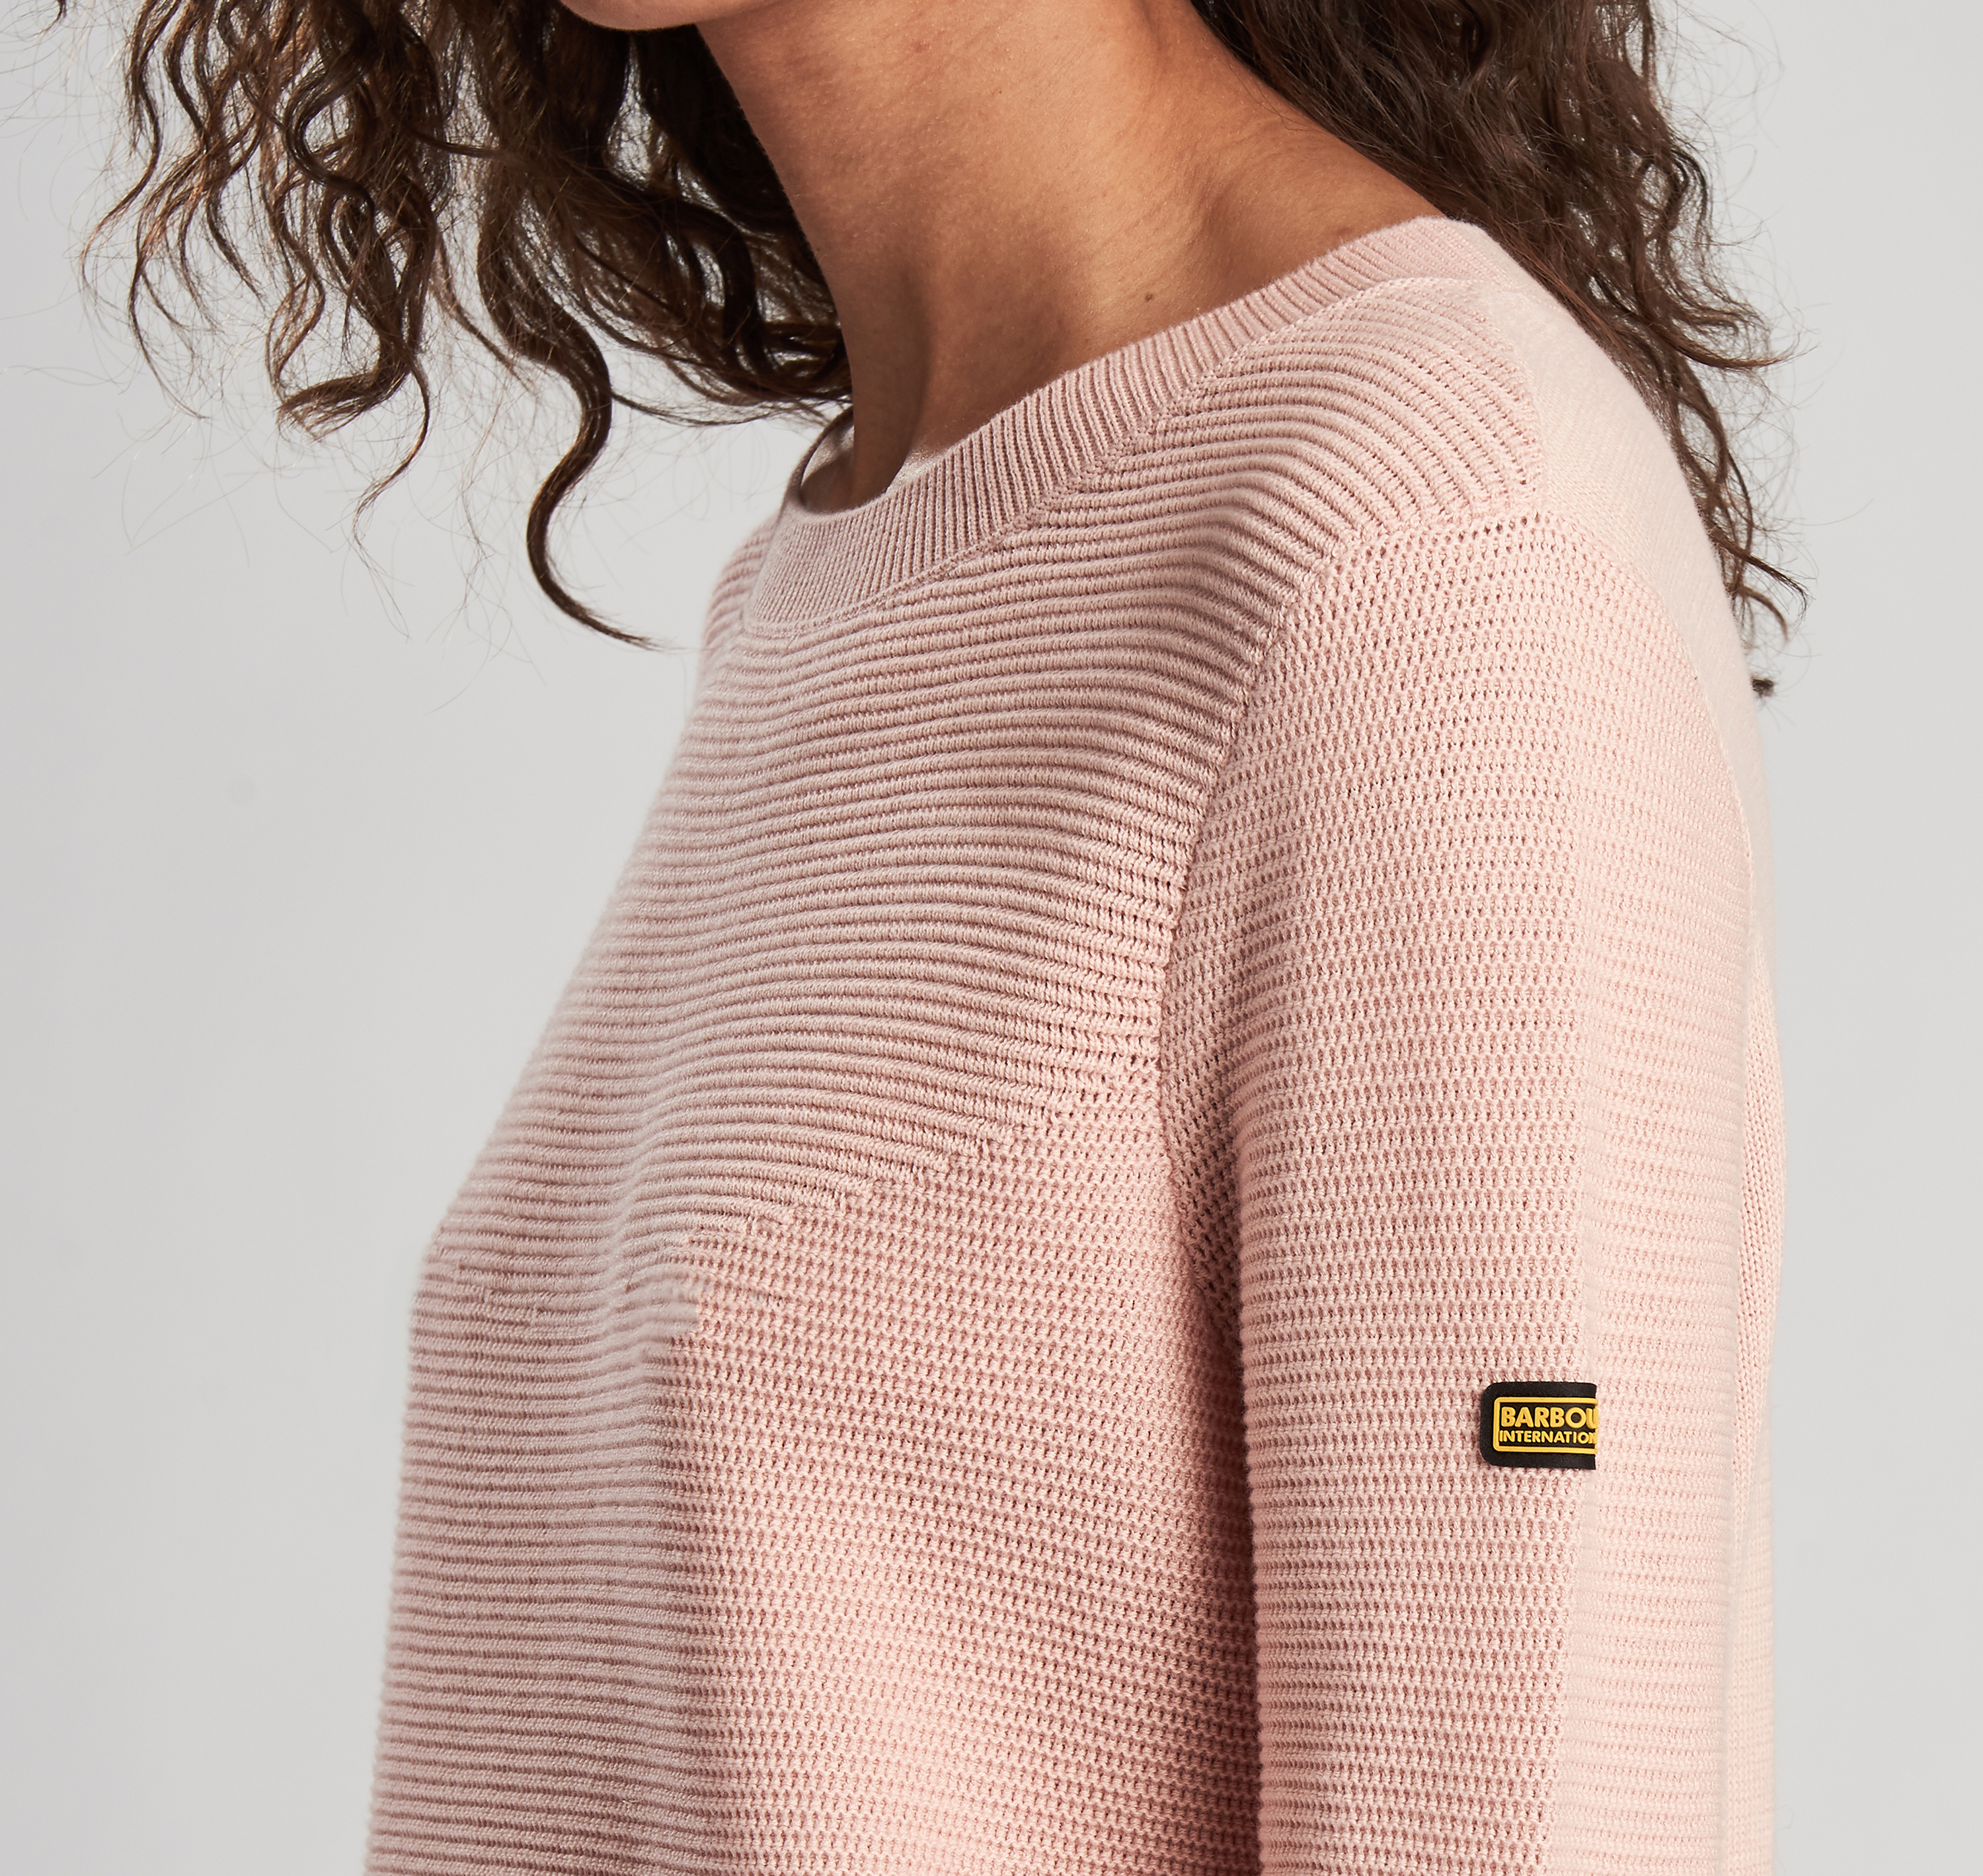 Barbour Apex Knit Sweater Honeydew